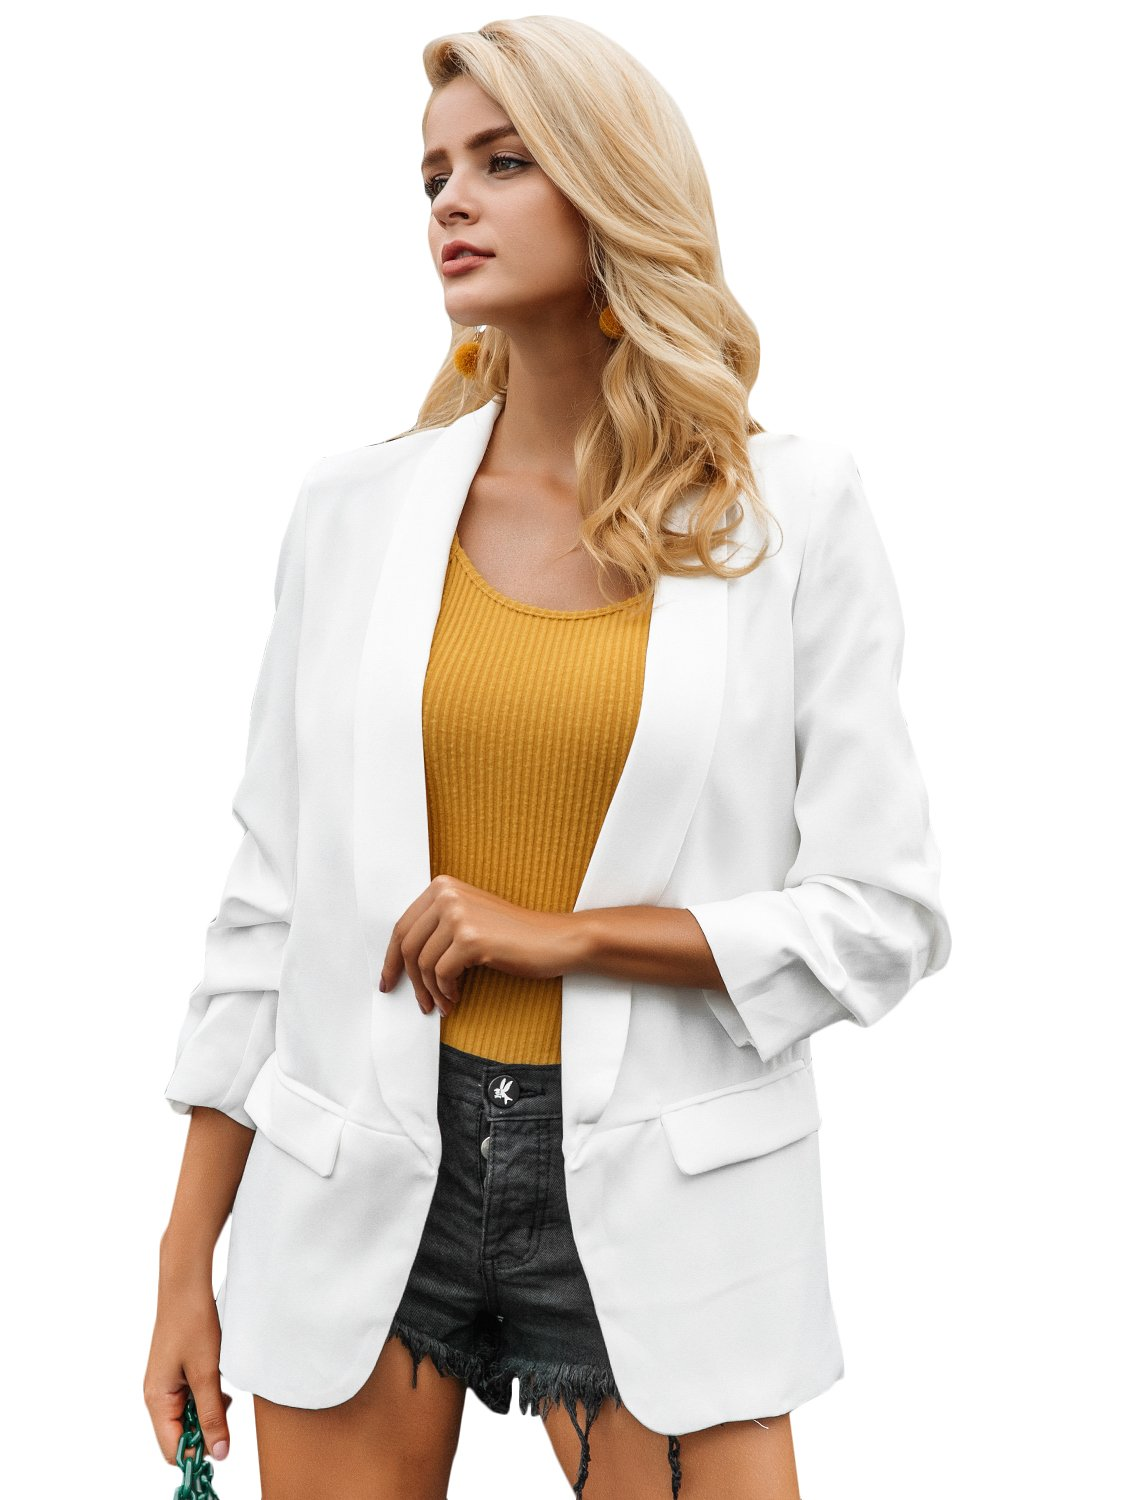 Simplee Women's Fashion 3/4 Ruched Sleeve Open Front Work Office Blazer Jacket by Simplee Apparel (Image #1)